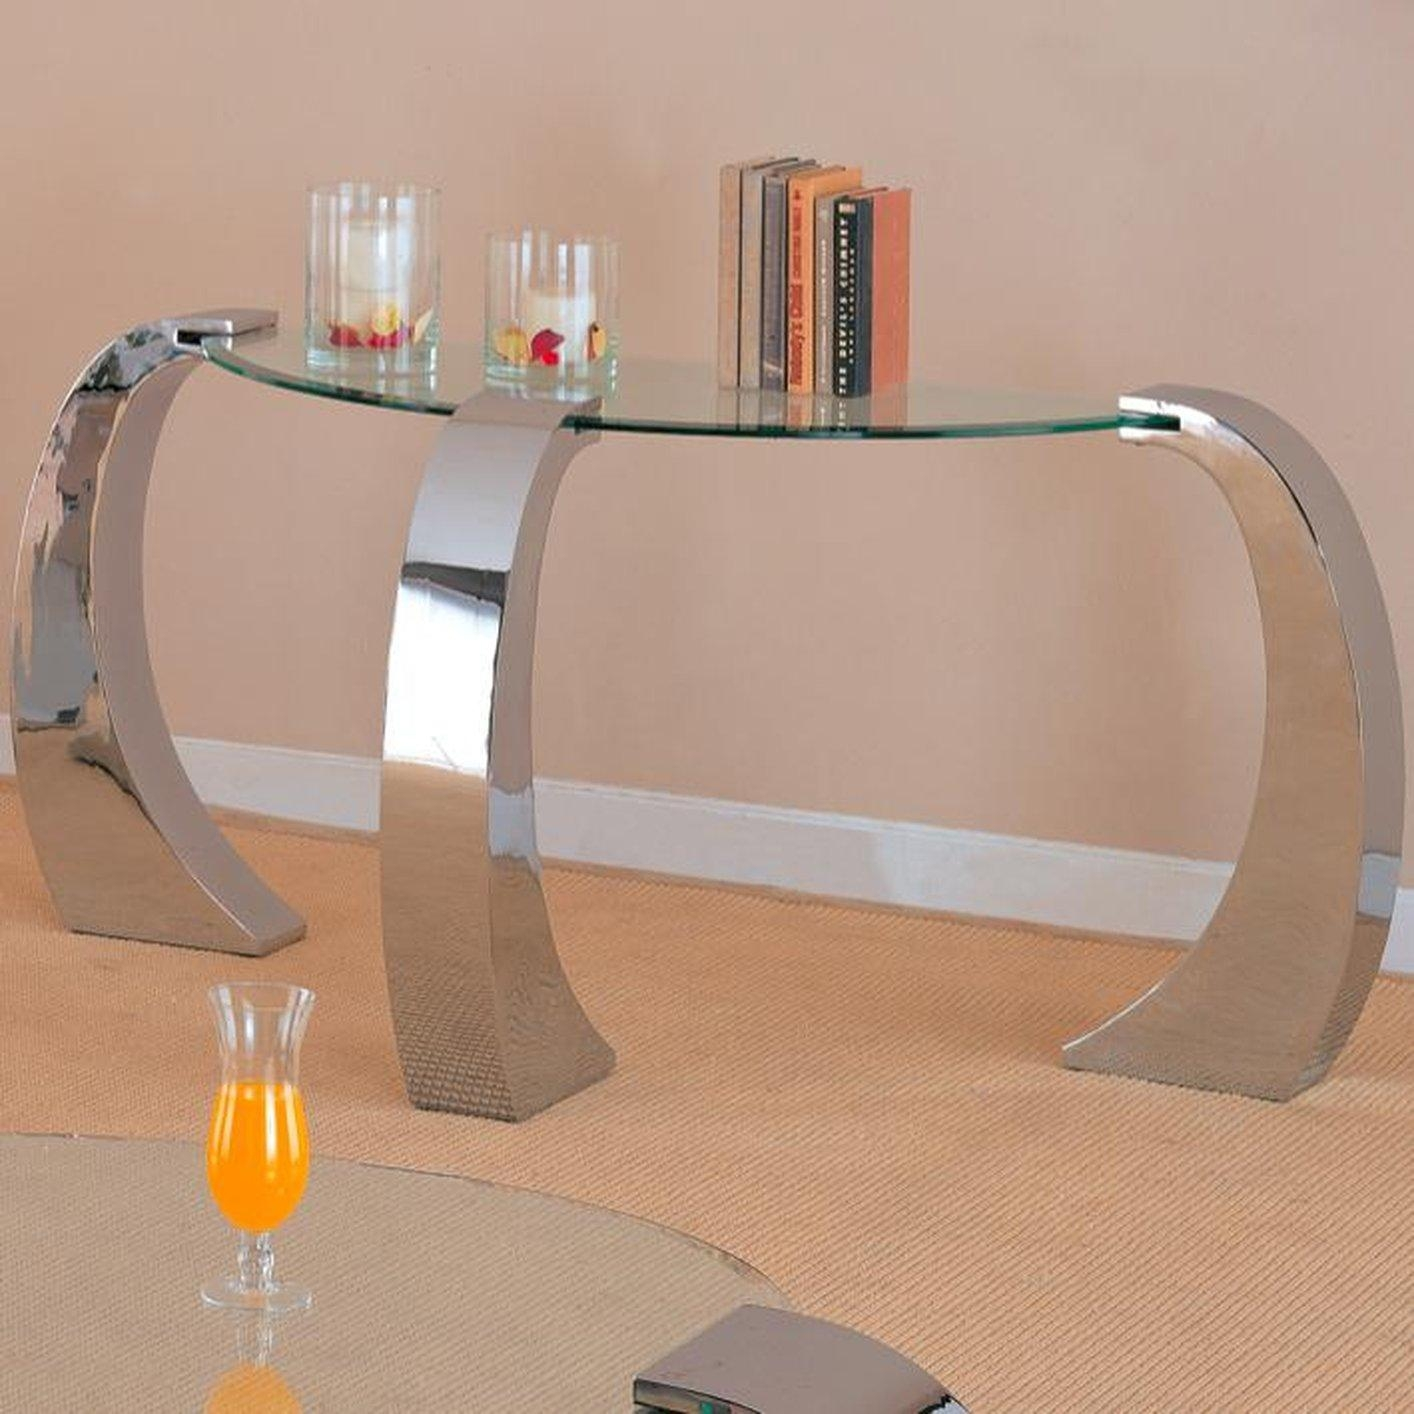 Sofa Table Design: Glass Sofa Tables Contemporary Astounding Glam Inside Metal Glass Sofa Tables (View 18 of 22)